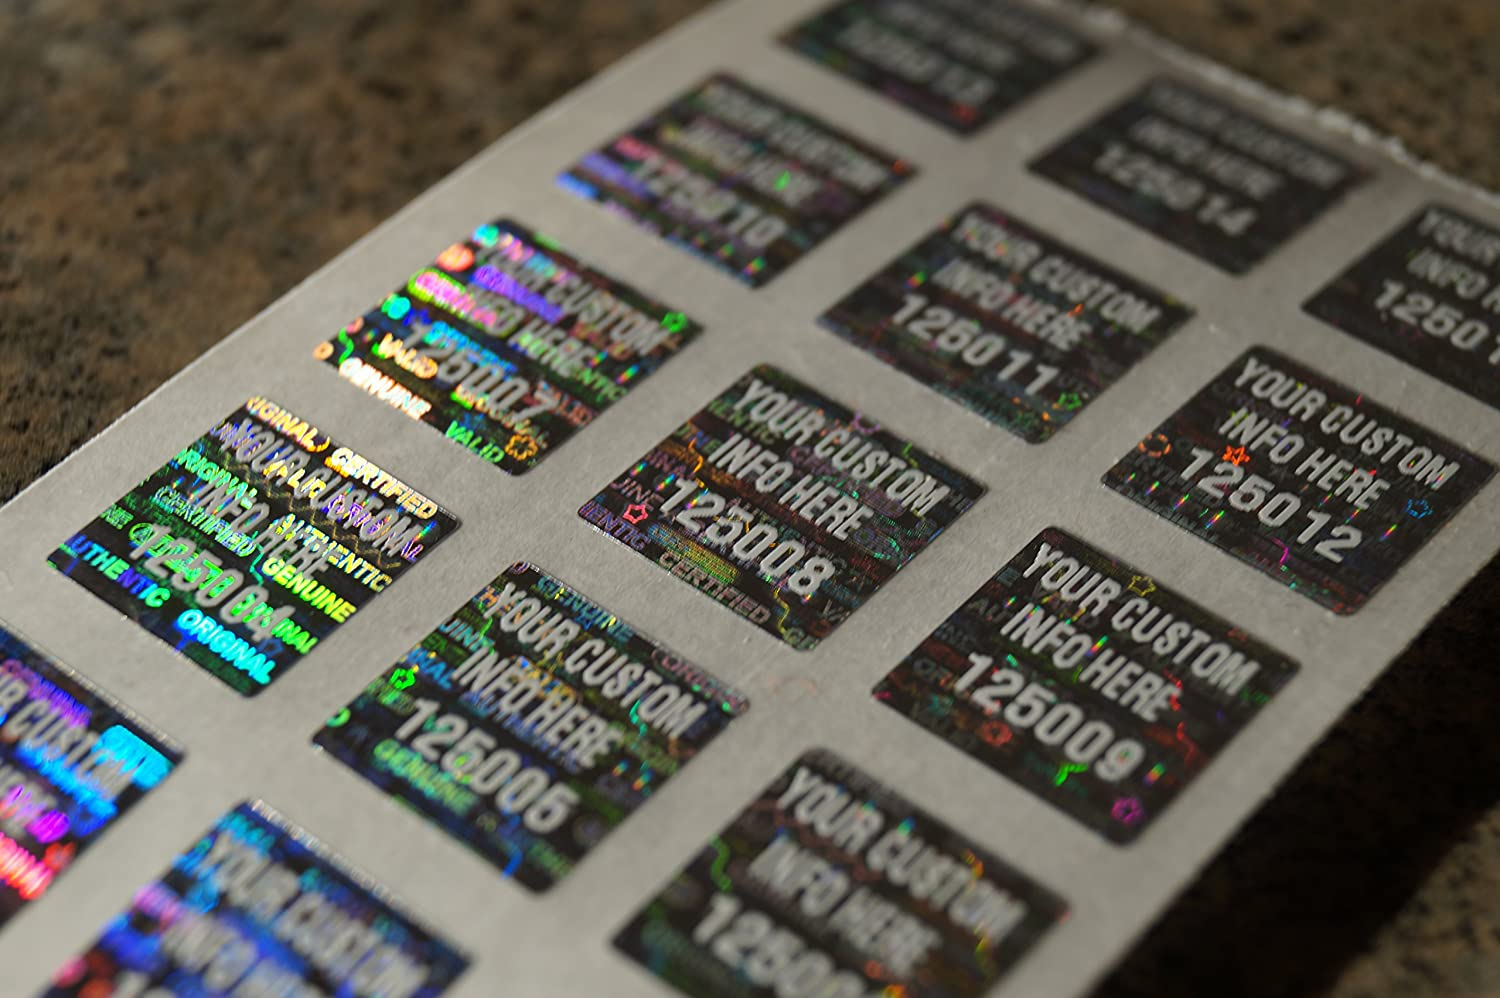 Qty 500 custom white printed bright silver hologram warranty void tamper evident high security labels stickers 5 inch square